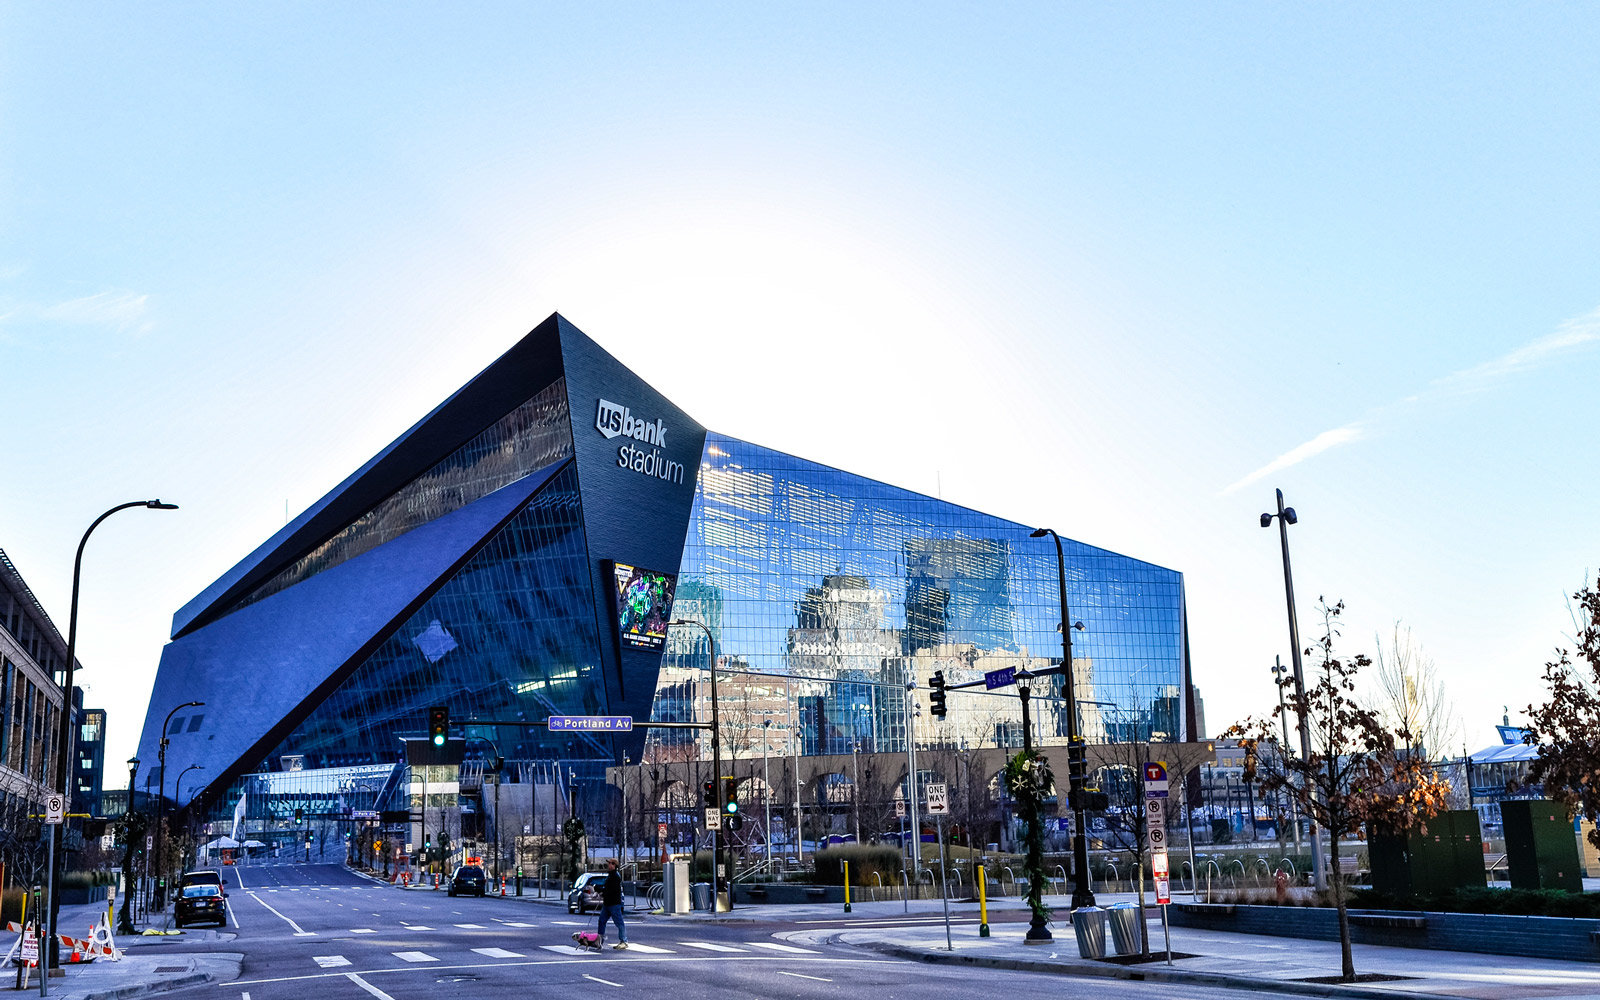 US Bank Stadium in Downtown Minneapolis